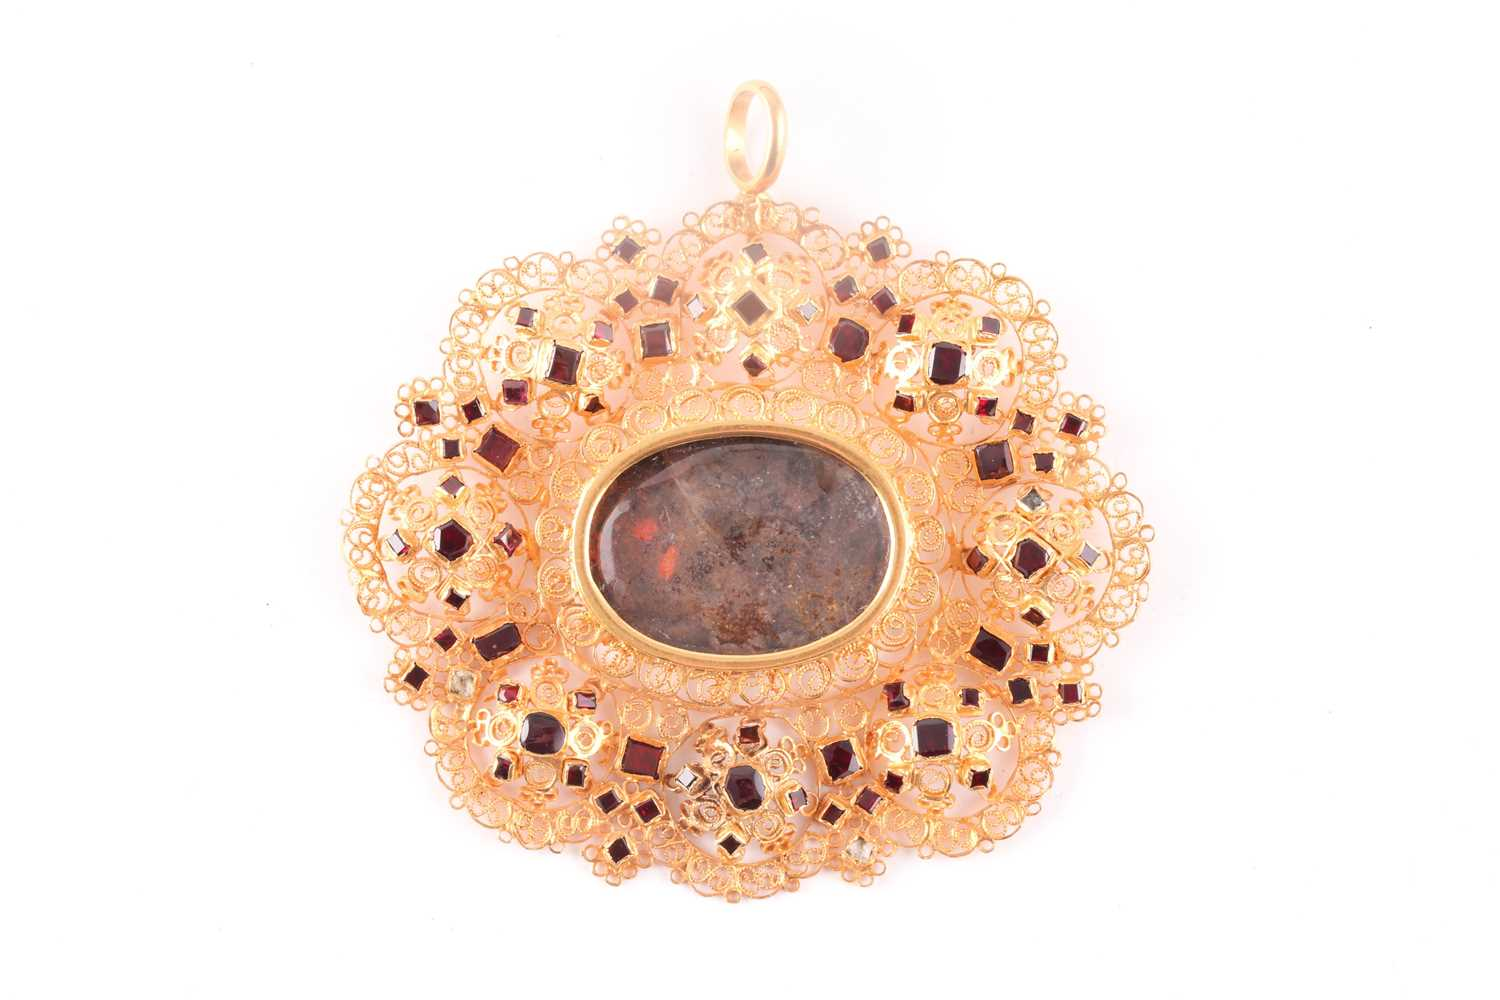 A Catalan gold and garnet pendant, centered with an oval glass aperture with faded paint, within